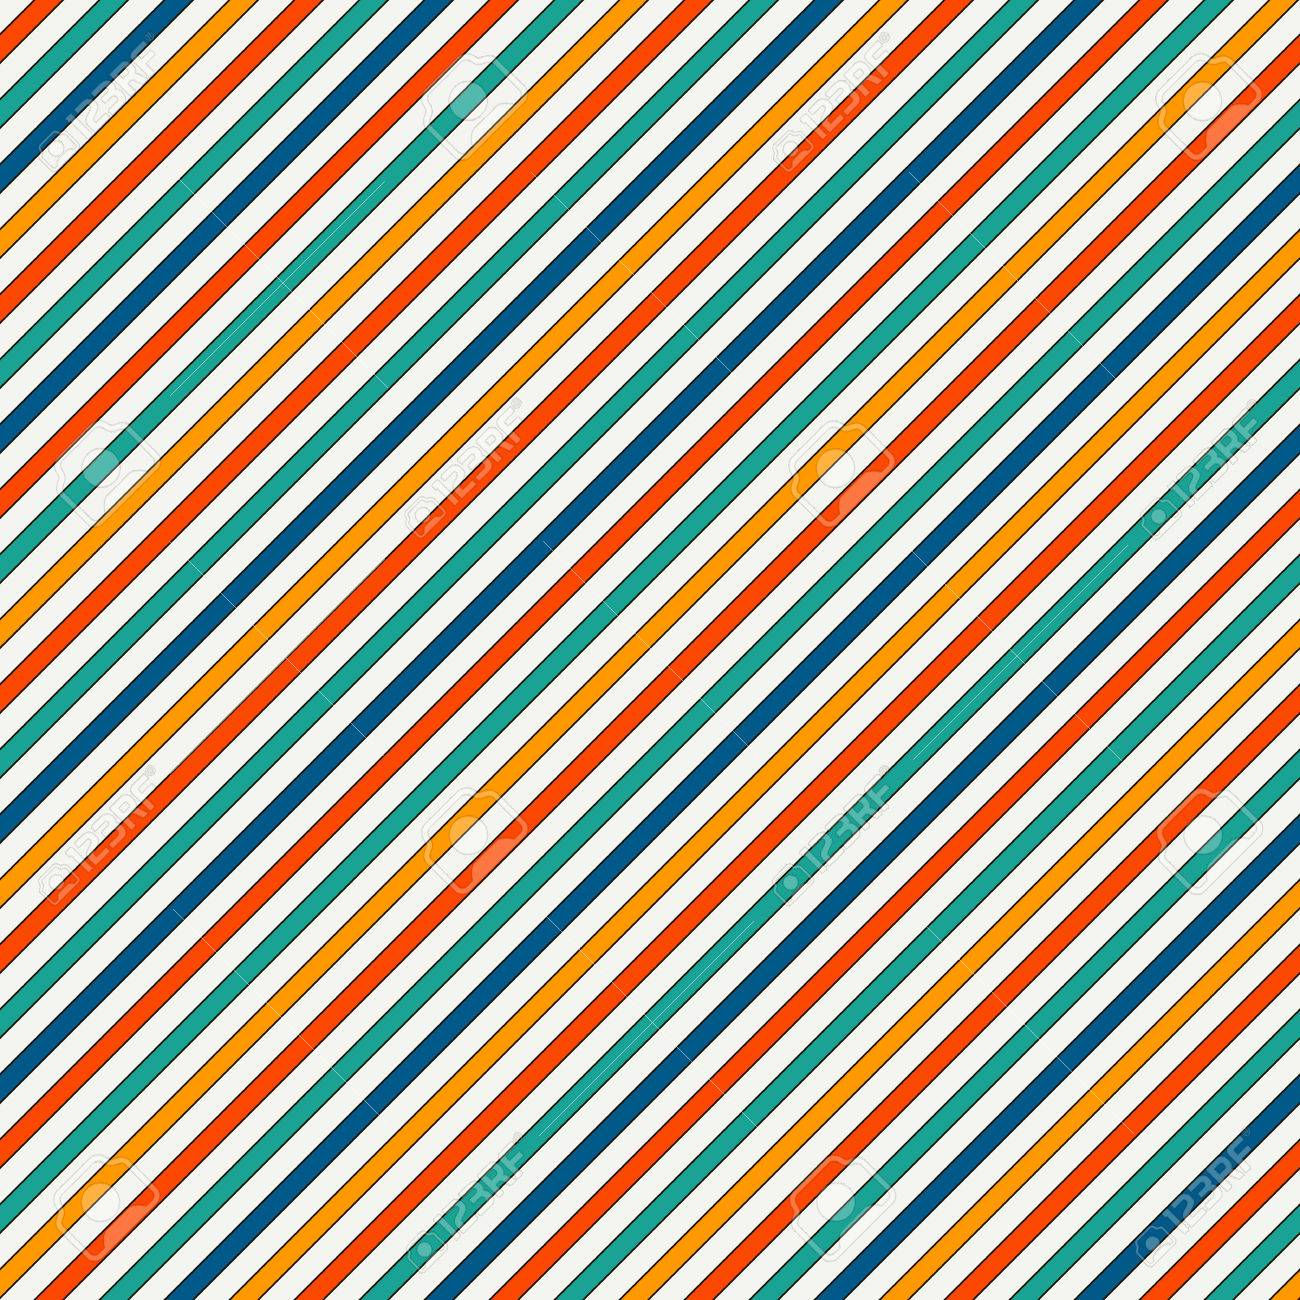 50ae2391 Vector - Vivid colors diagonal stripes abstract background. Thin slanting  line wallpaper. Seamless pattern with simple classic motif.